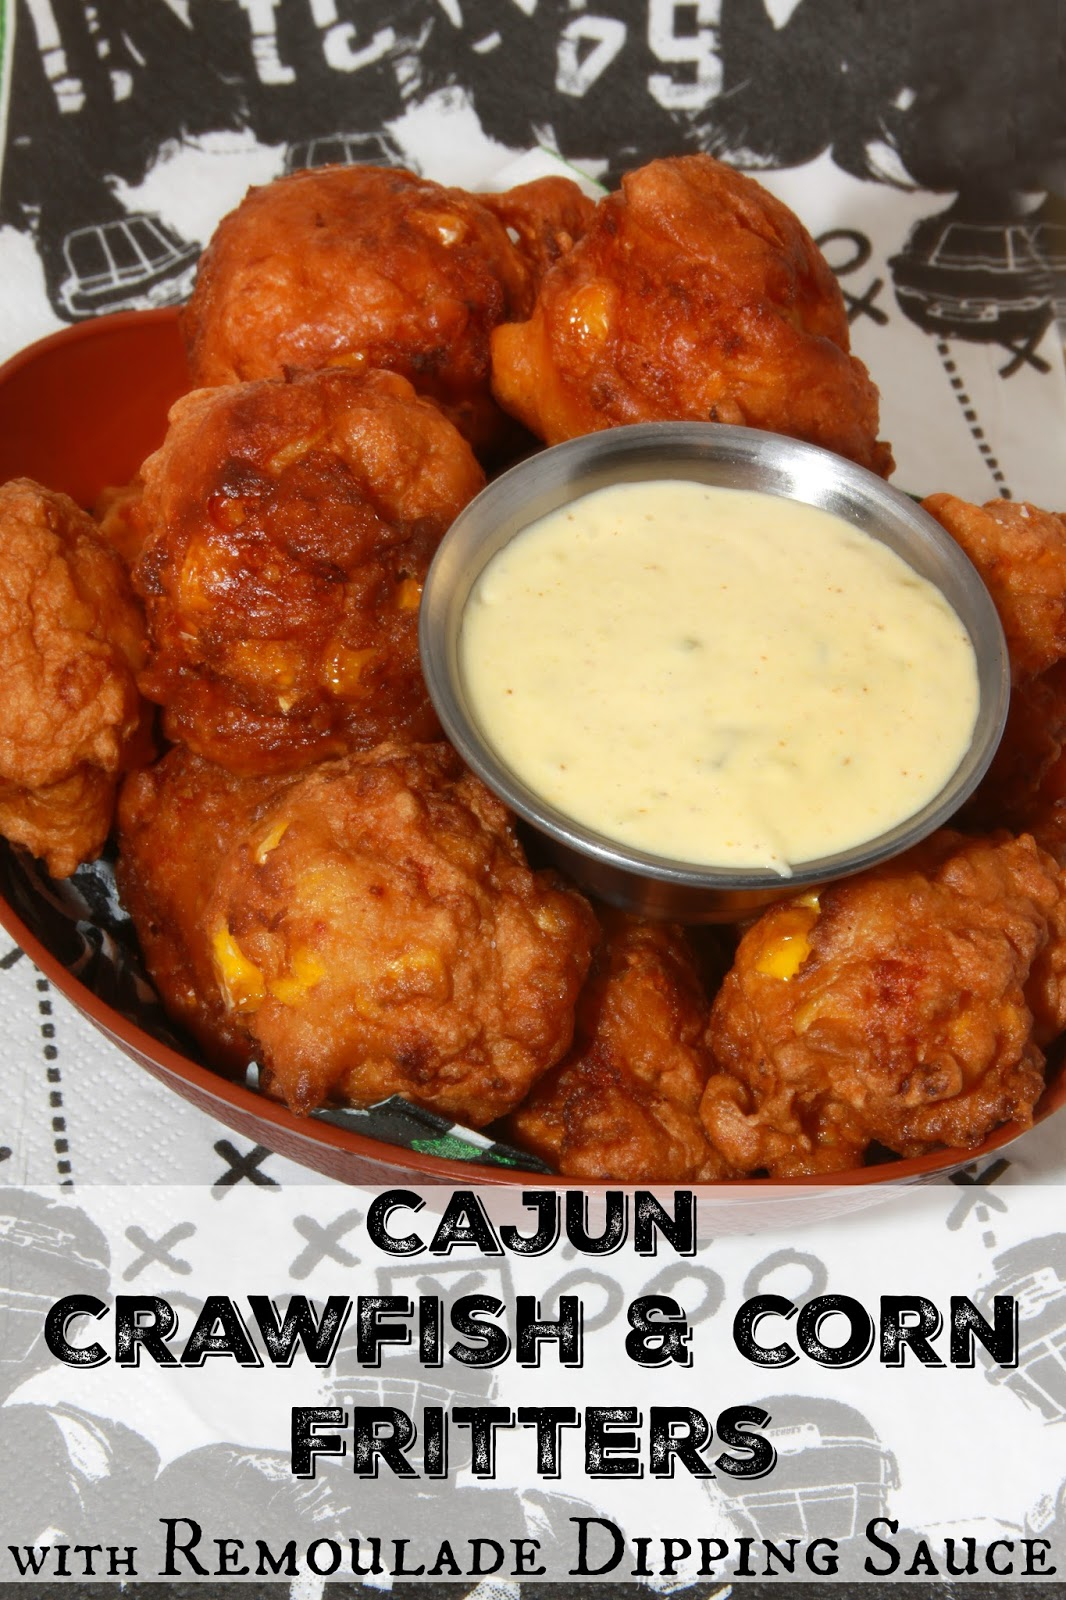 ... of Food: Cajun Crawfish and Corn Fritters with Remoulade Dipping Sauce